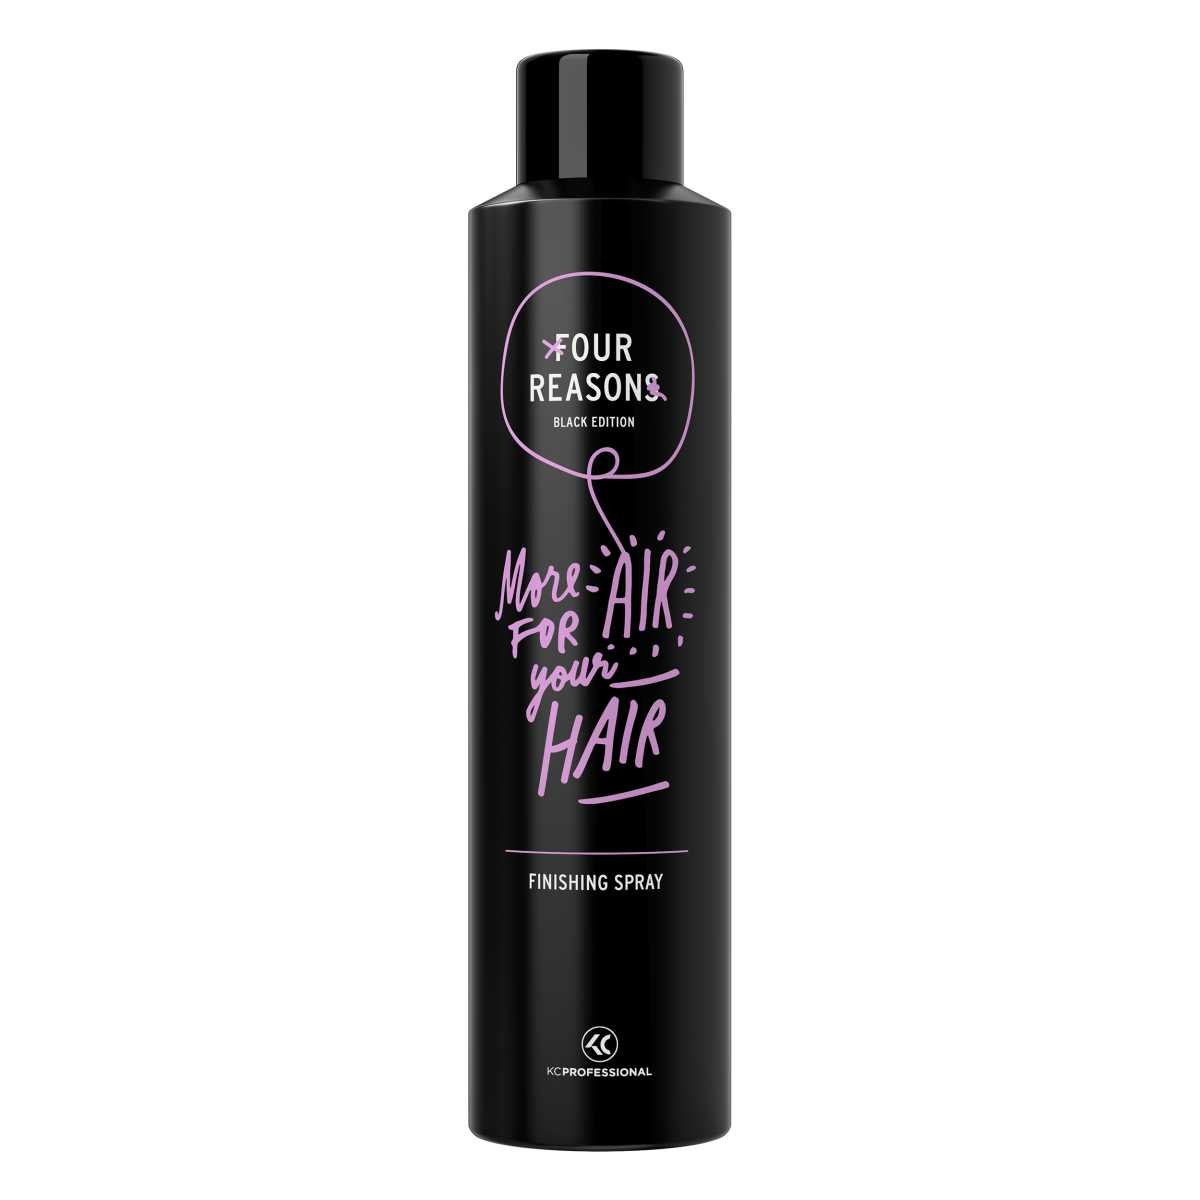 Four-Reasons-Black-Edition-Finishing-Spray